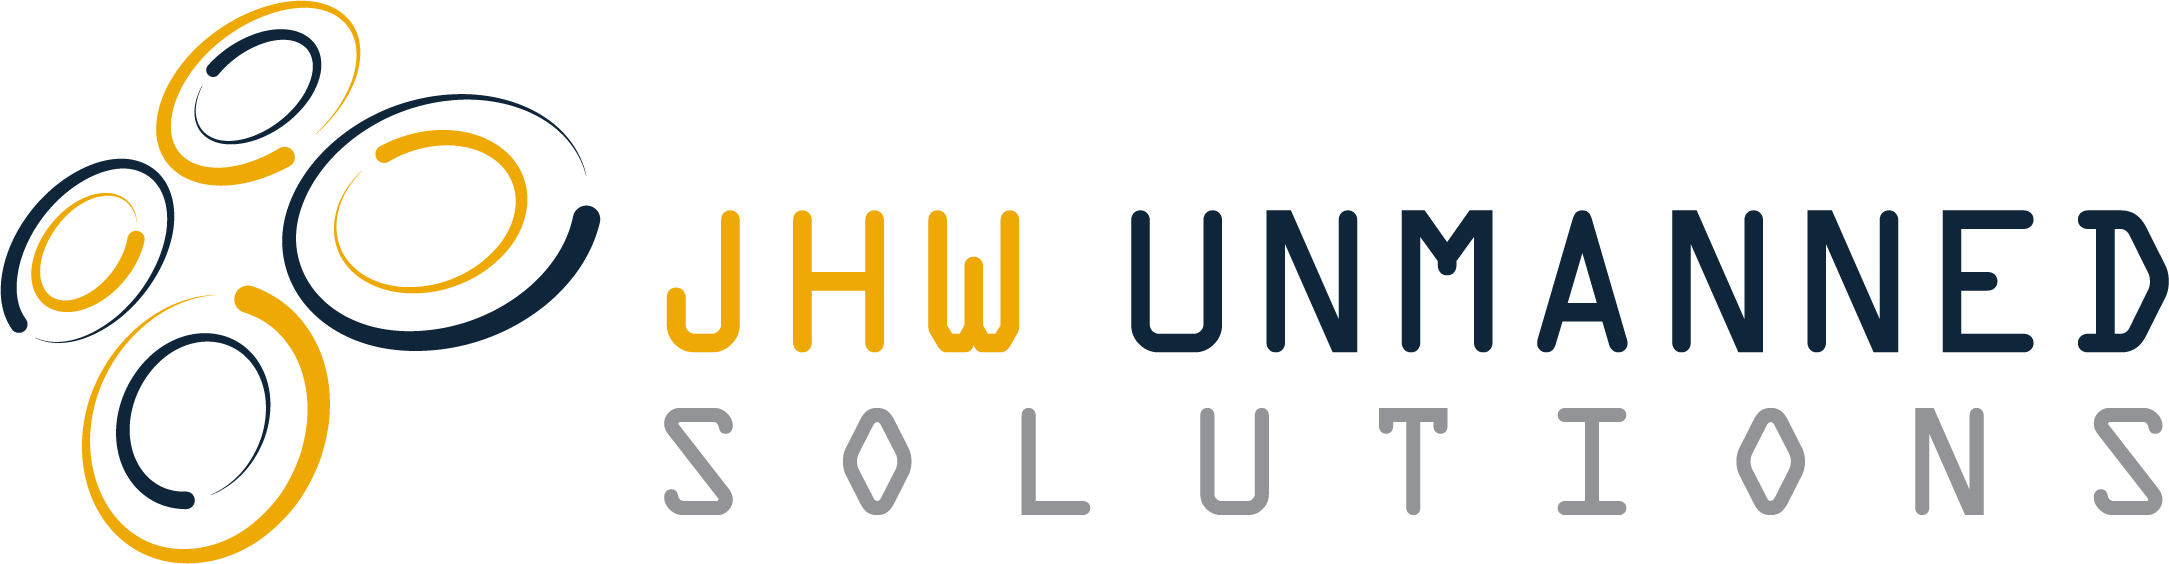 JHW Unmanned Solutions